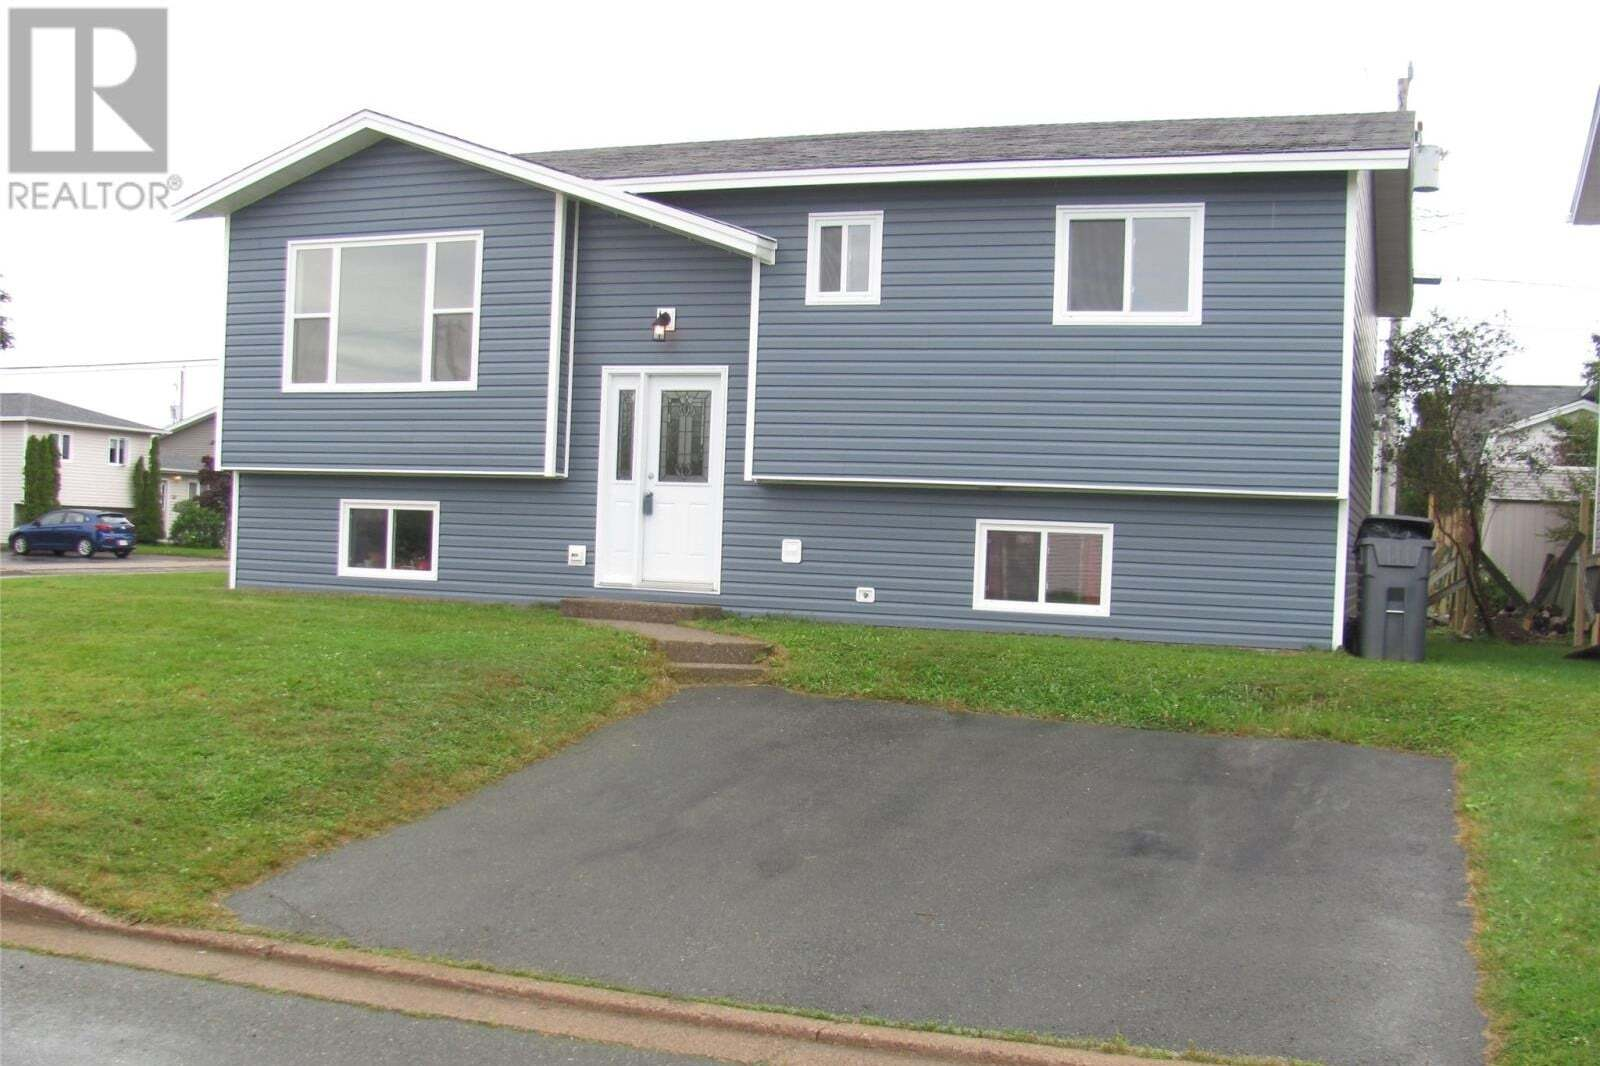 House for sale at 36 Windfall Cres Conception Bay South Newfoundland - MLS: 1218777